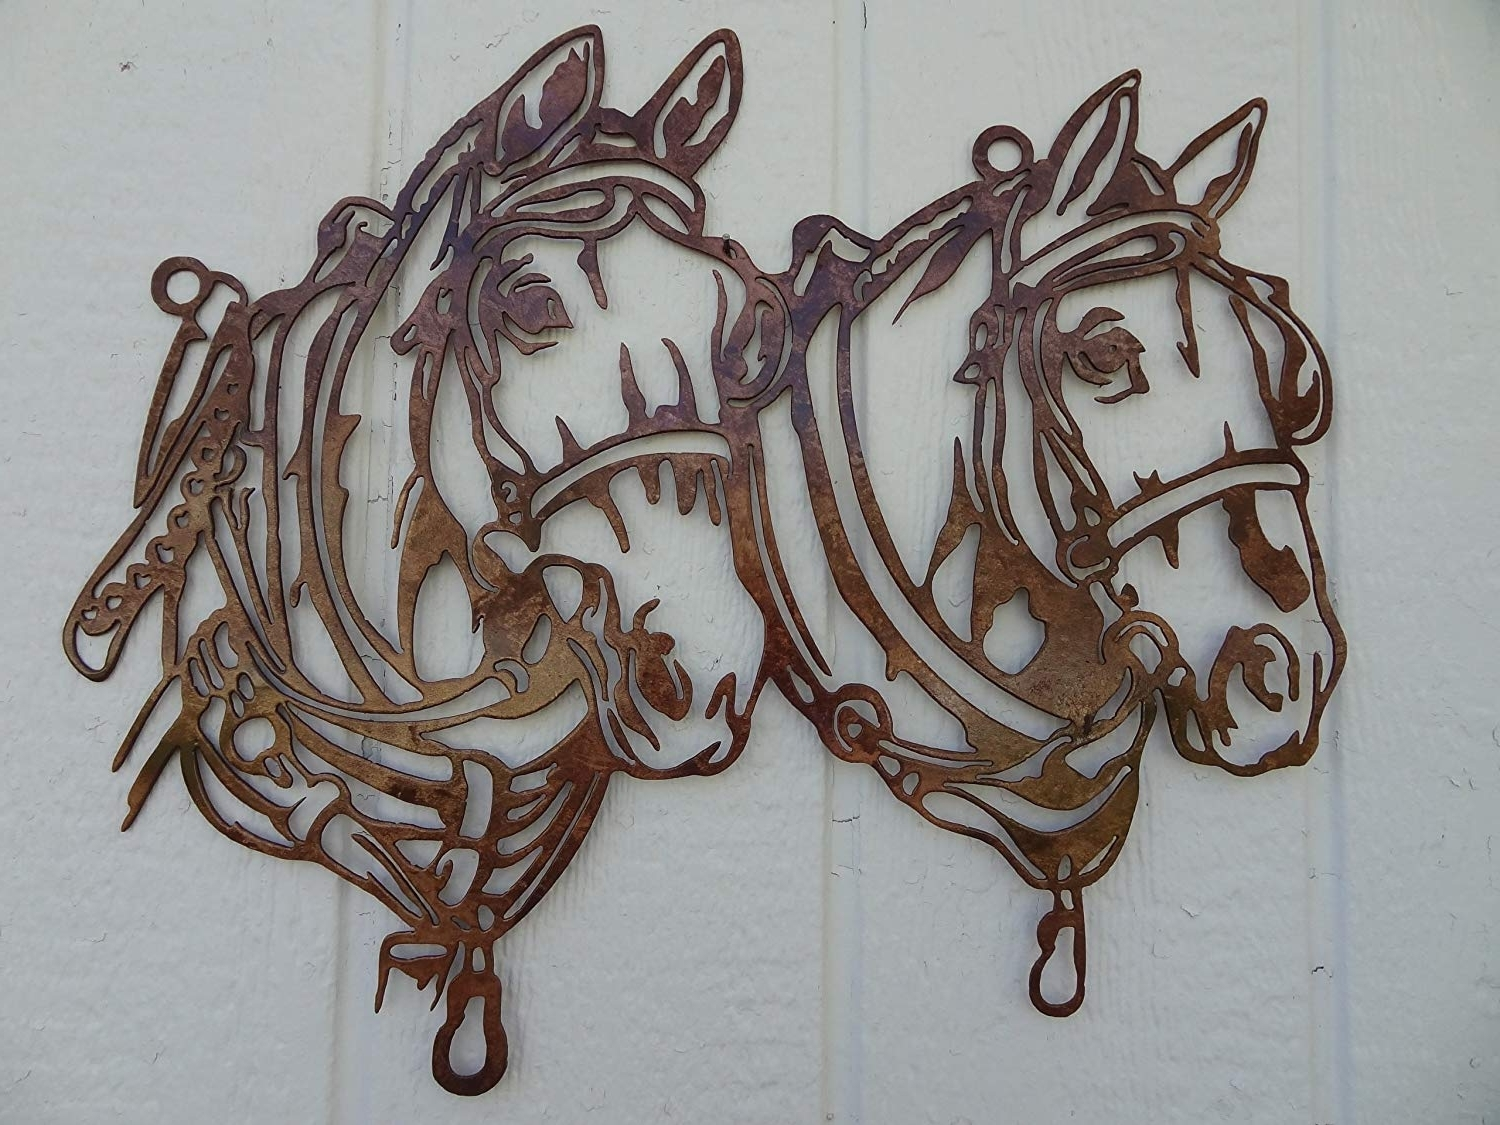 Amazon: Draft Horse Head Metal Wall Art Country Rustic Home Inside Most Current Horses Wall Art (View 8 of 15)